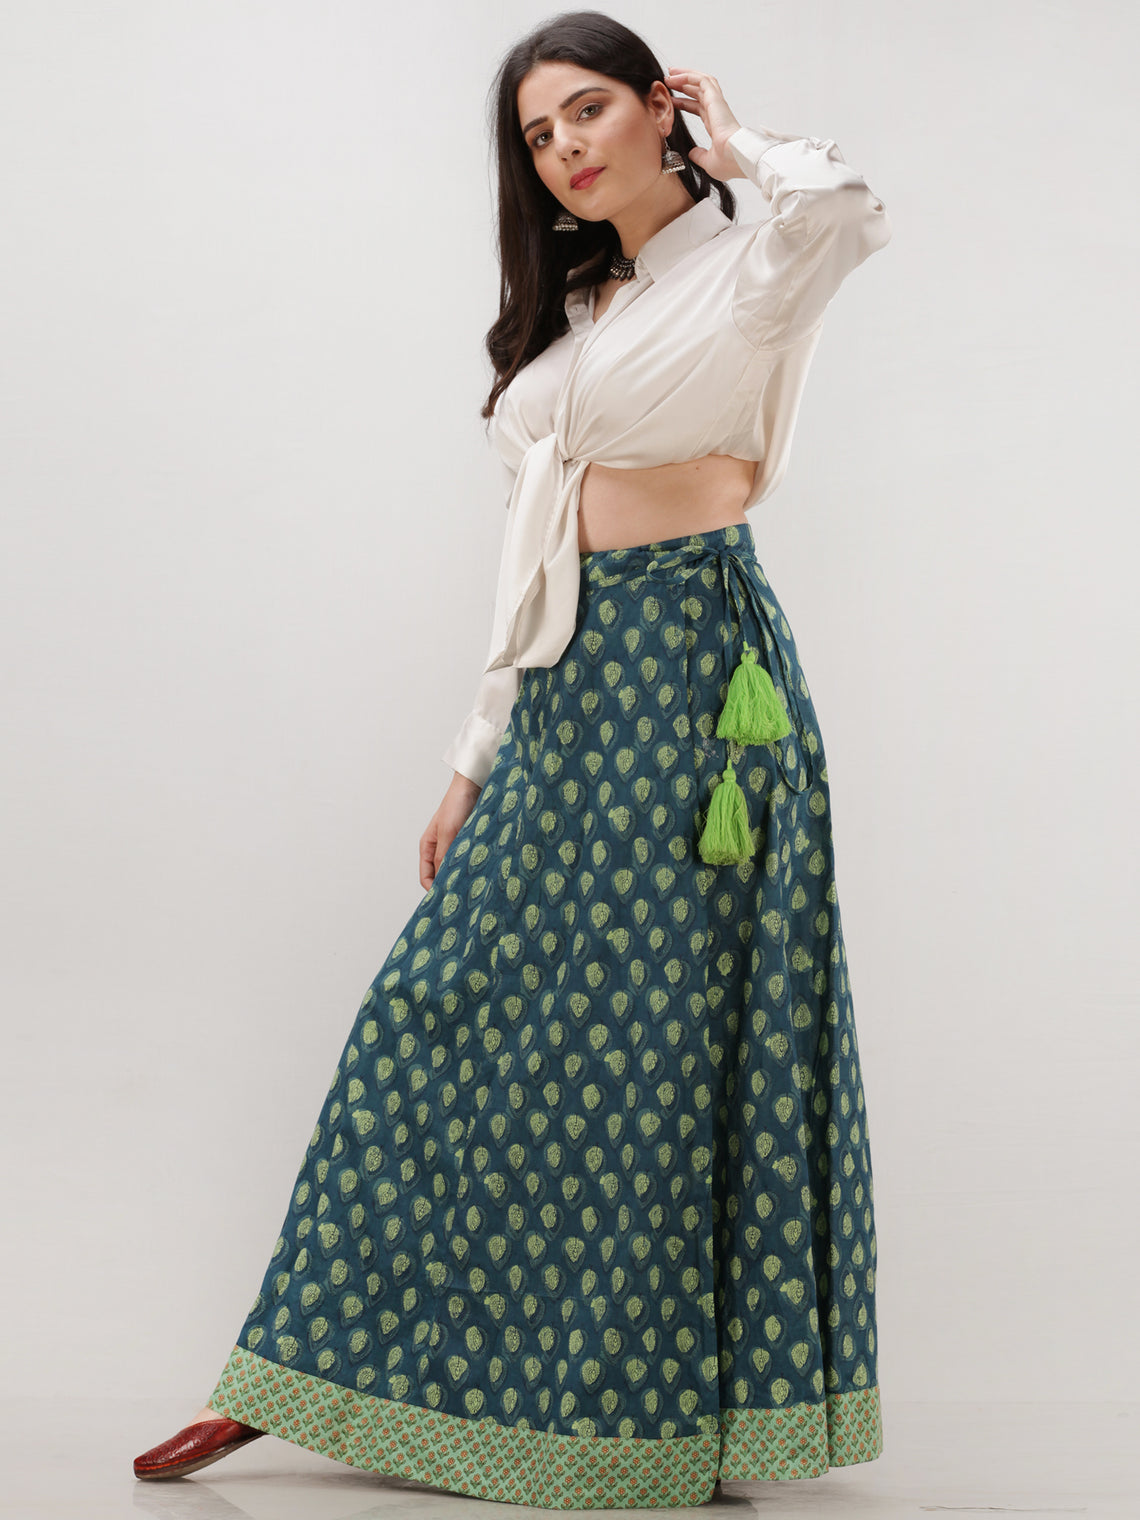 Bottle Green  Hand Block Printed Wrap Around Skirt  - S402F1865